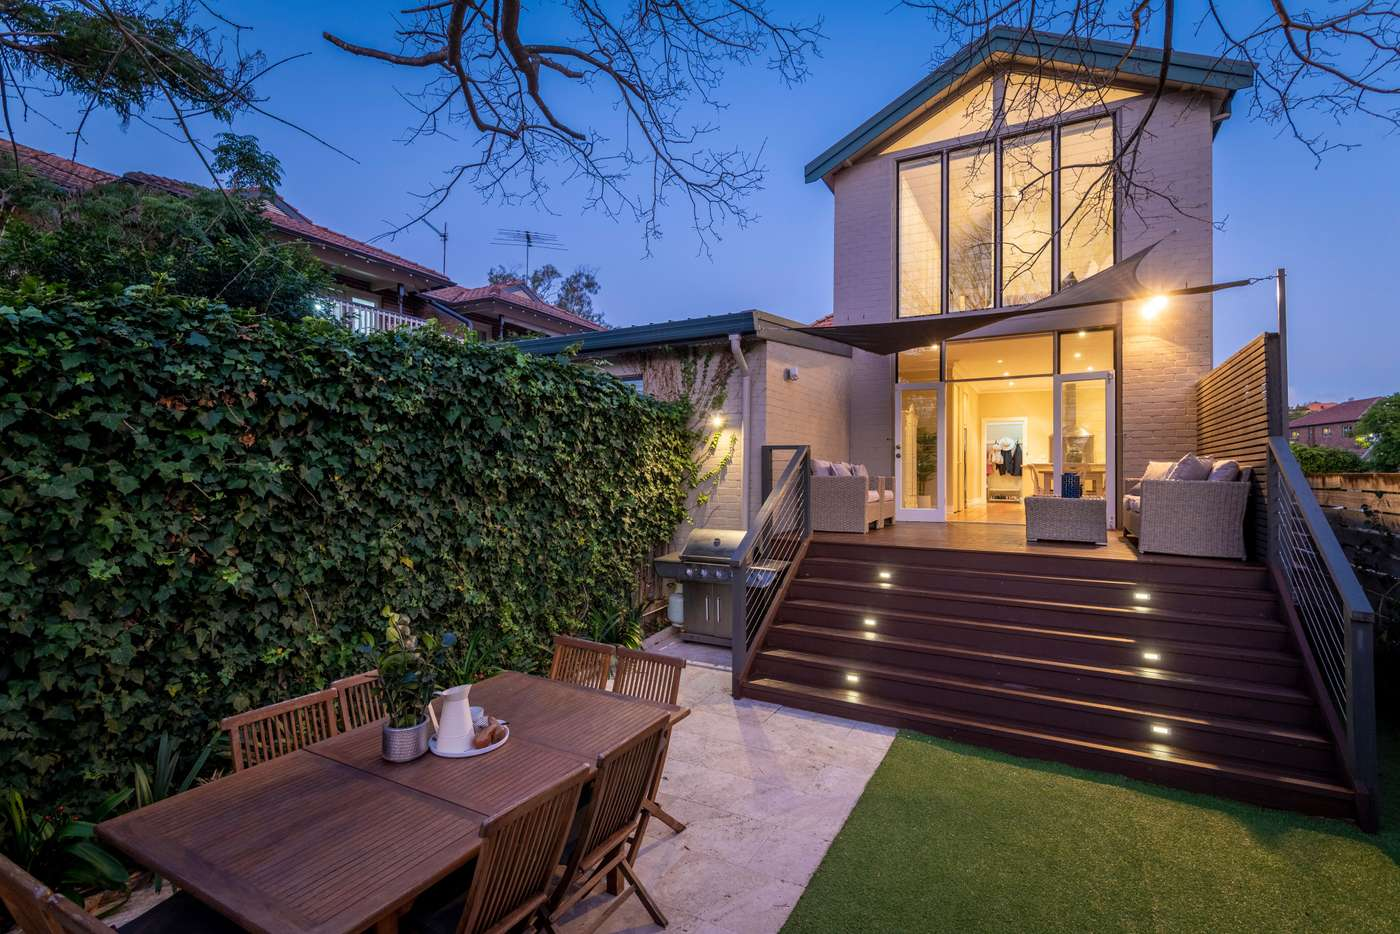 Main view of Homely house listing, 84 Avenue Road, Mosman NSW 2088